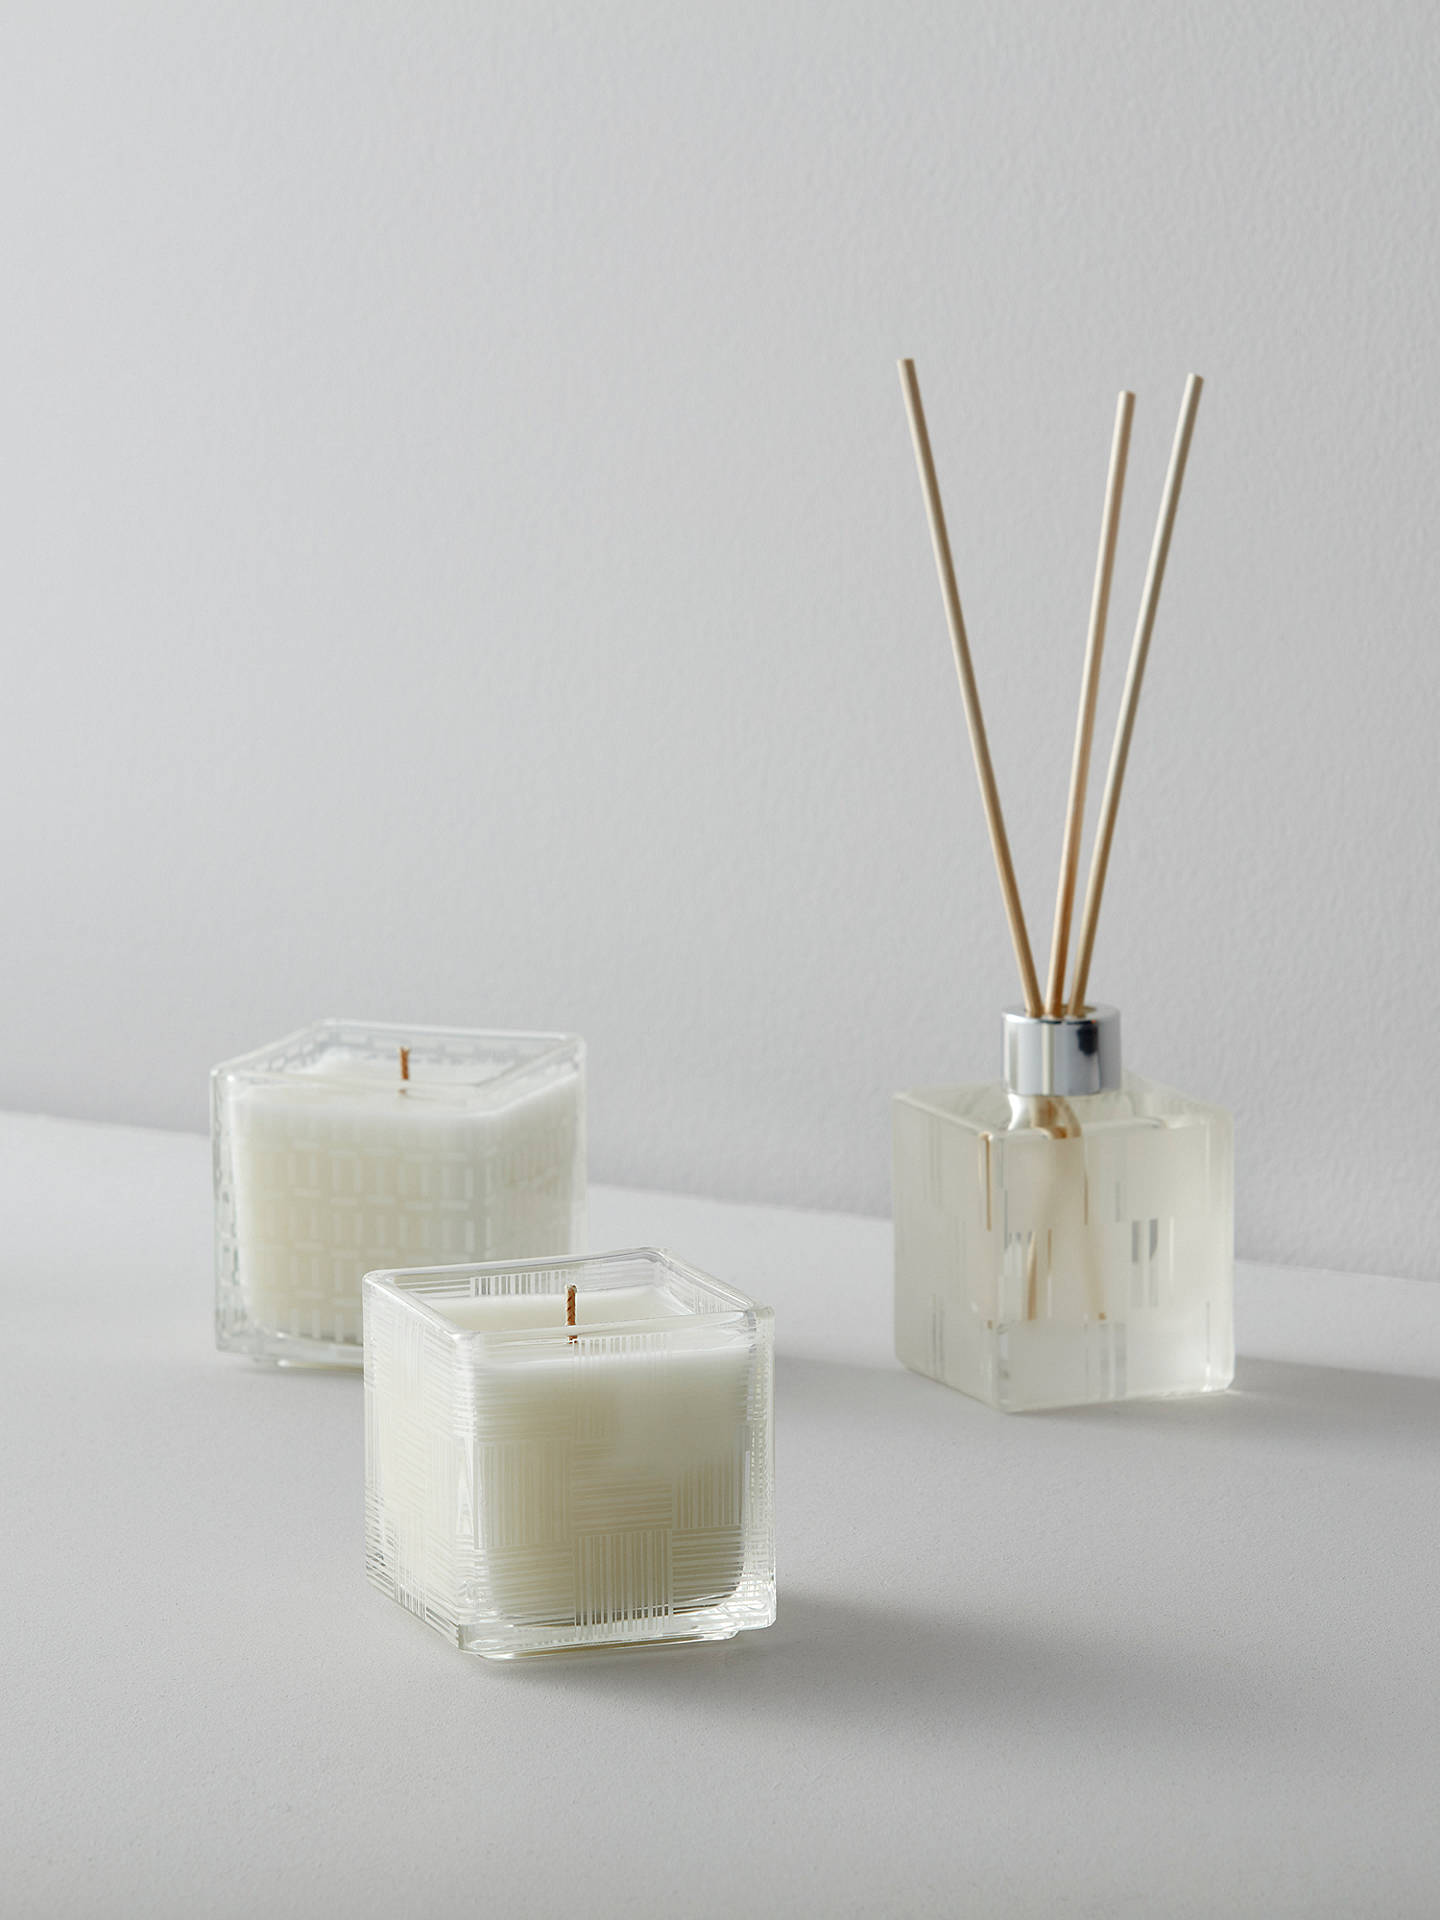 BuyJohn Lewis & Partners Cassis Scented Candle, 300g Online at johnlewis.com